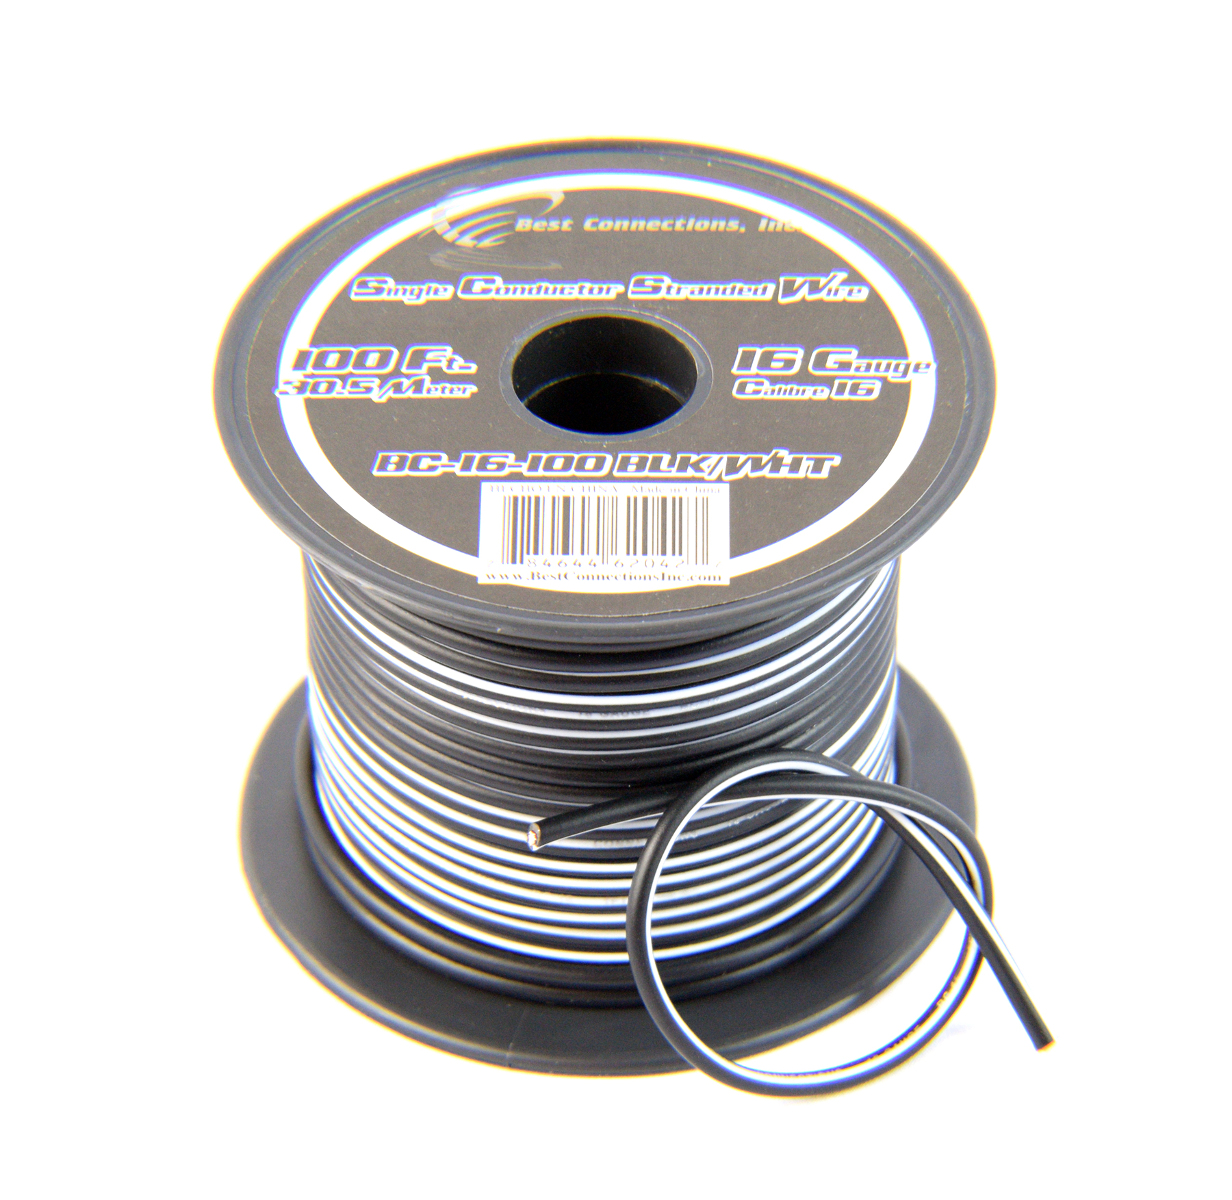 16 Gauge Black with White Stripe Tracer Wire - 100' FT